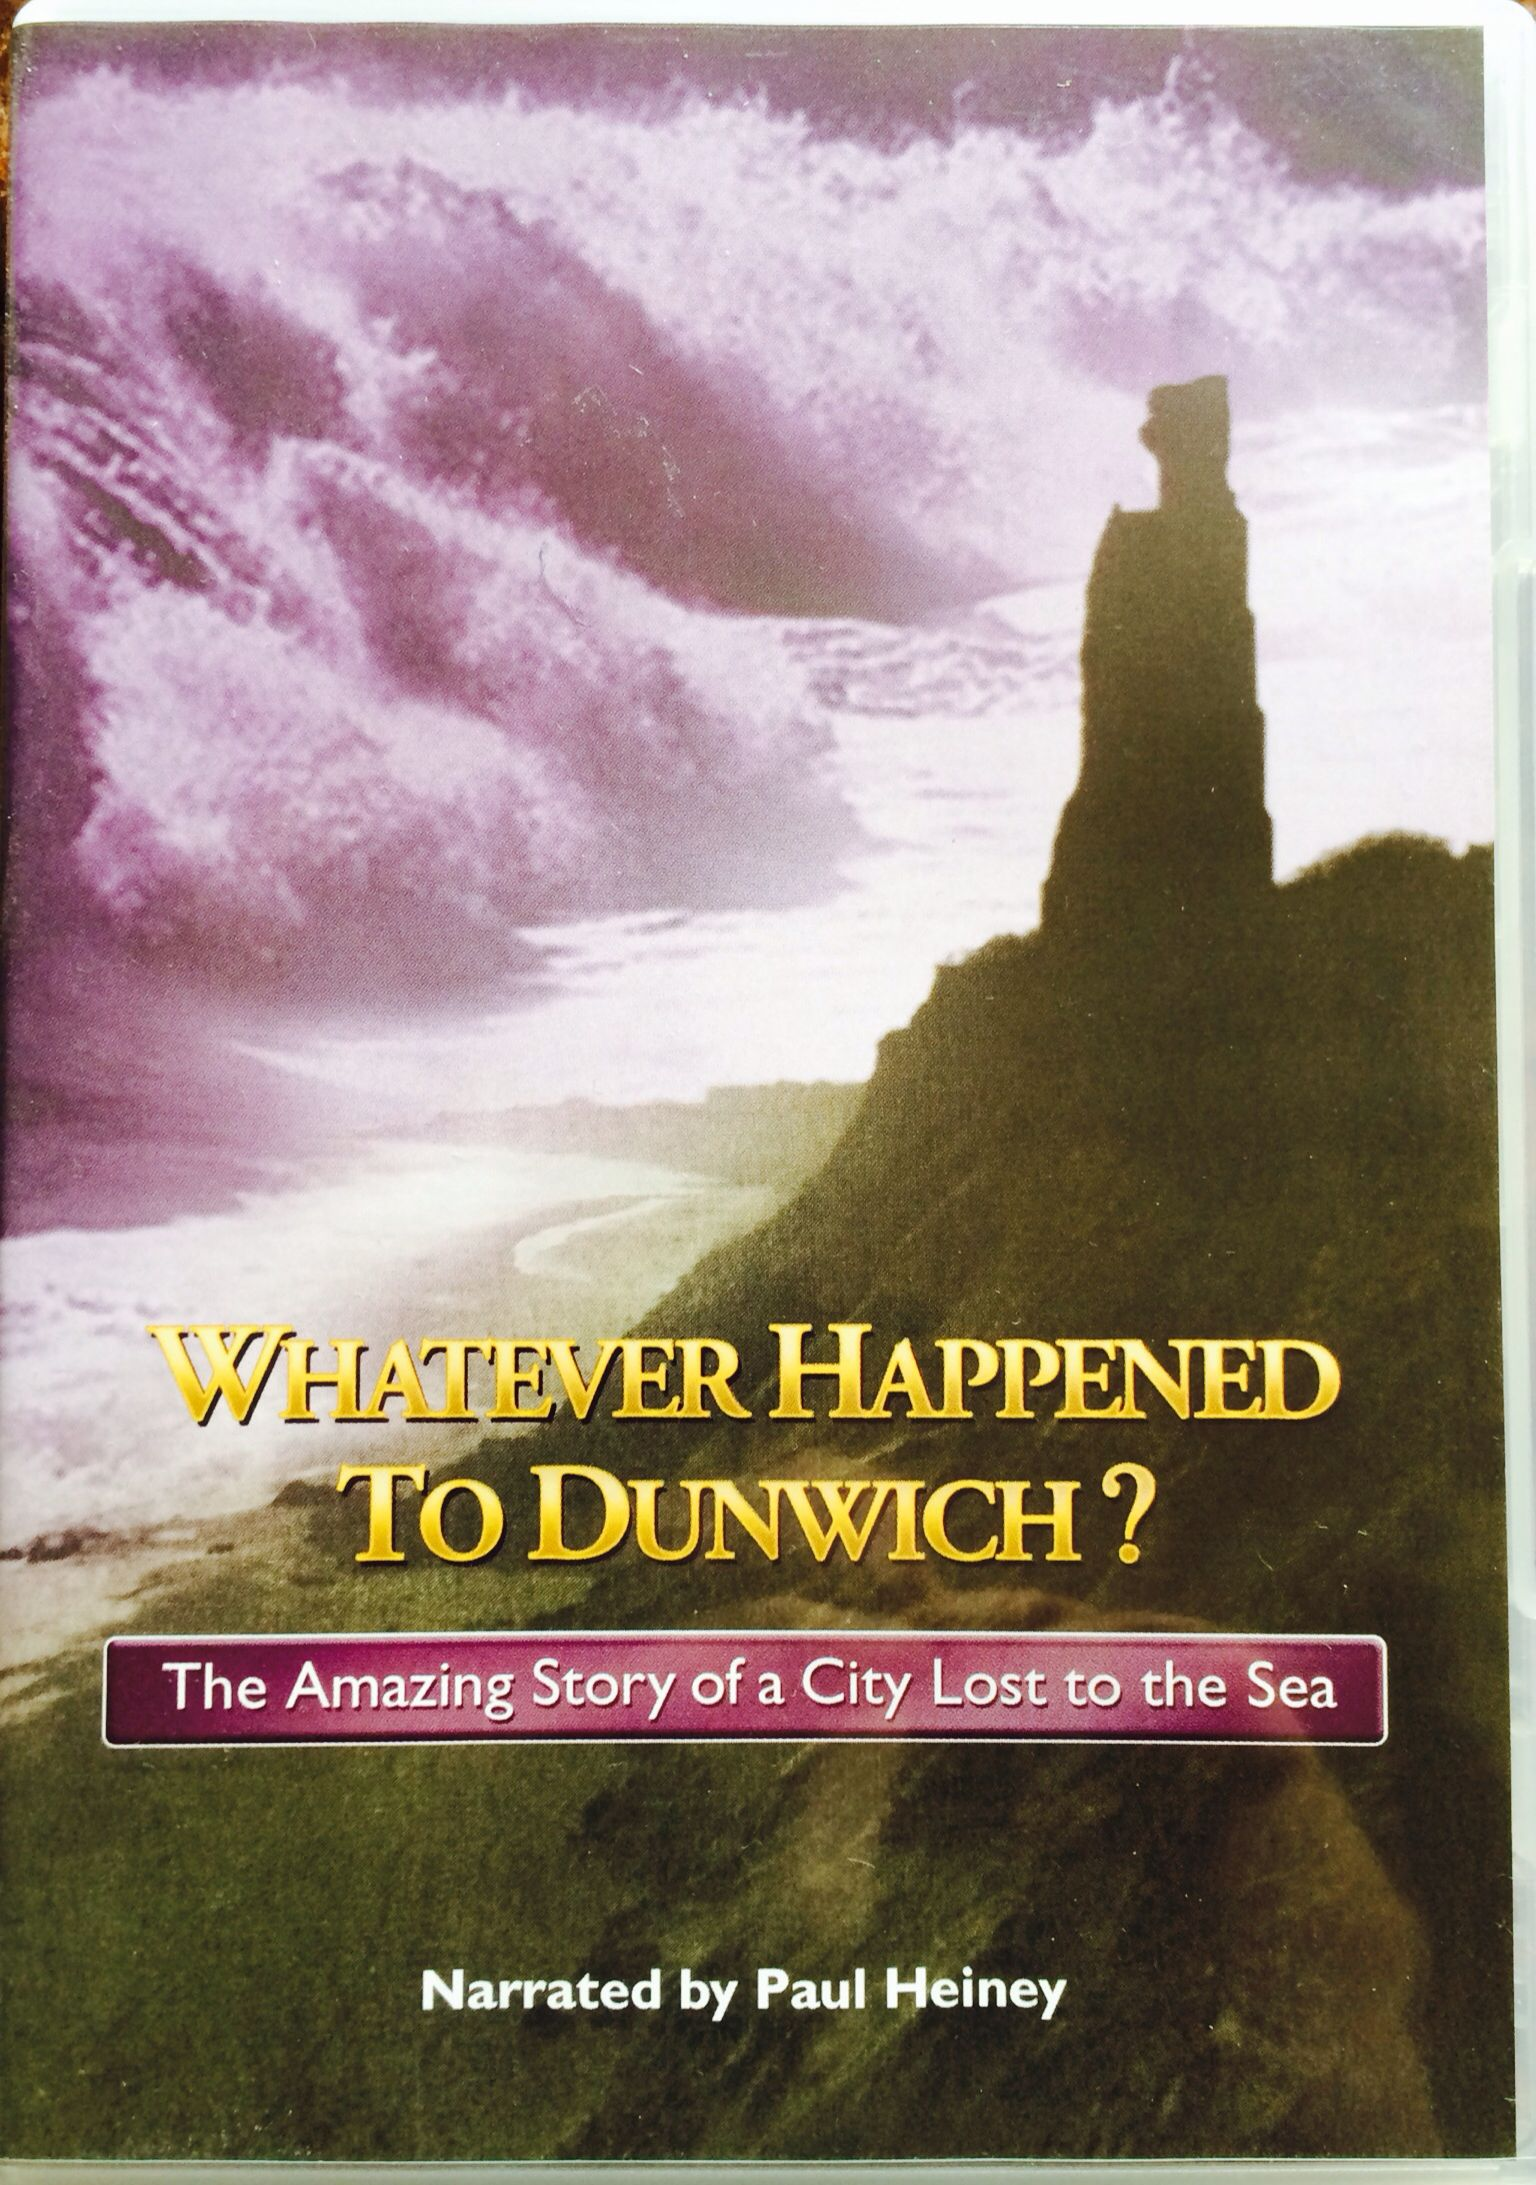 Whatever Happened to Dunwich DVD